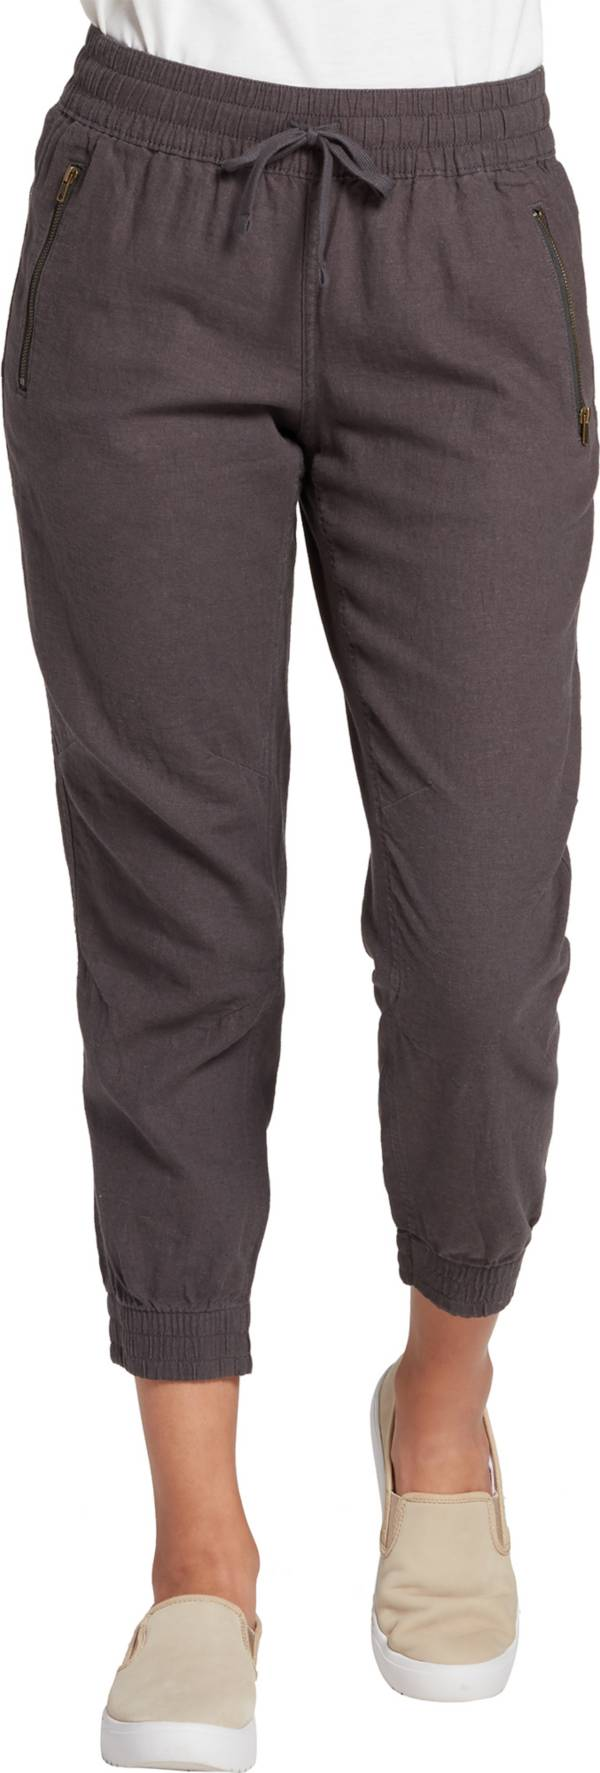 Alpine Design Women's Pull-On Linen Jogger Pants product image